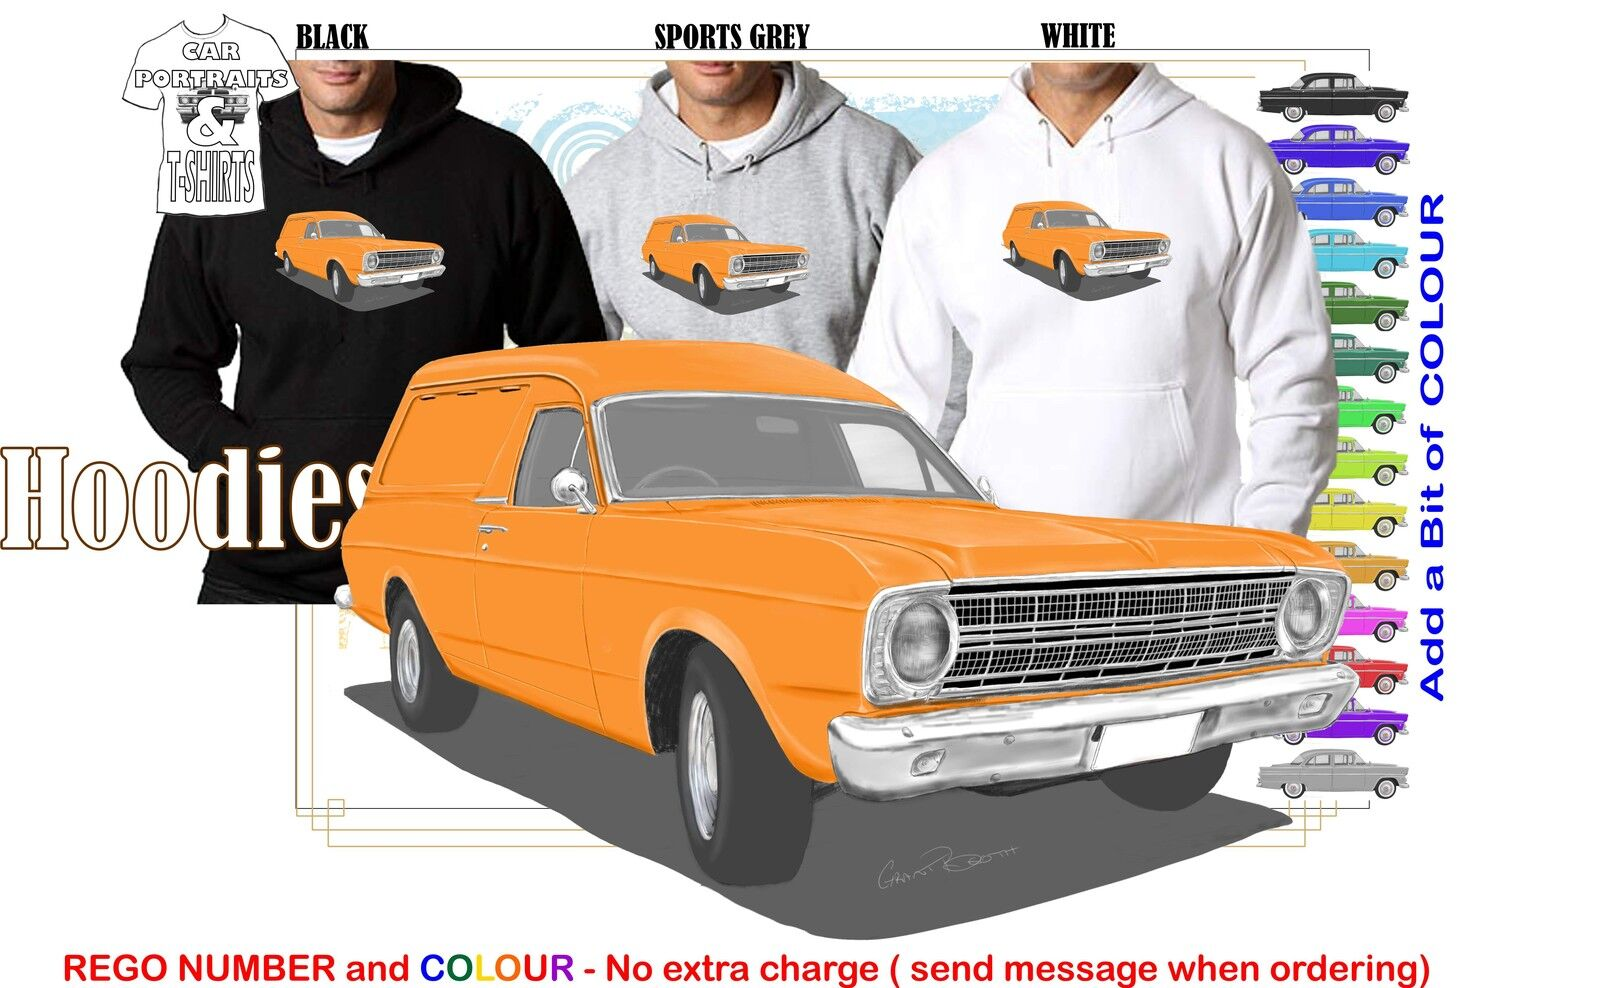 66-68 XR FALCON VAN HOODIE ILLUSTRATED CLASSIC RETRO MUSCLE SPORTS CAR